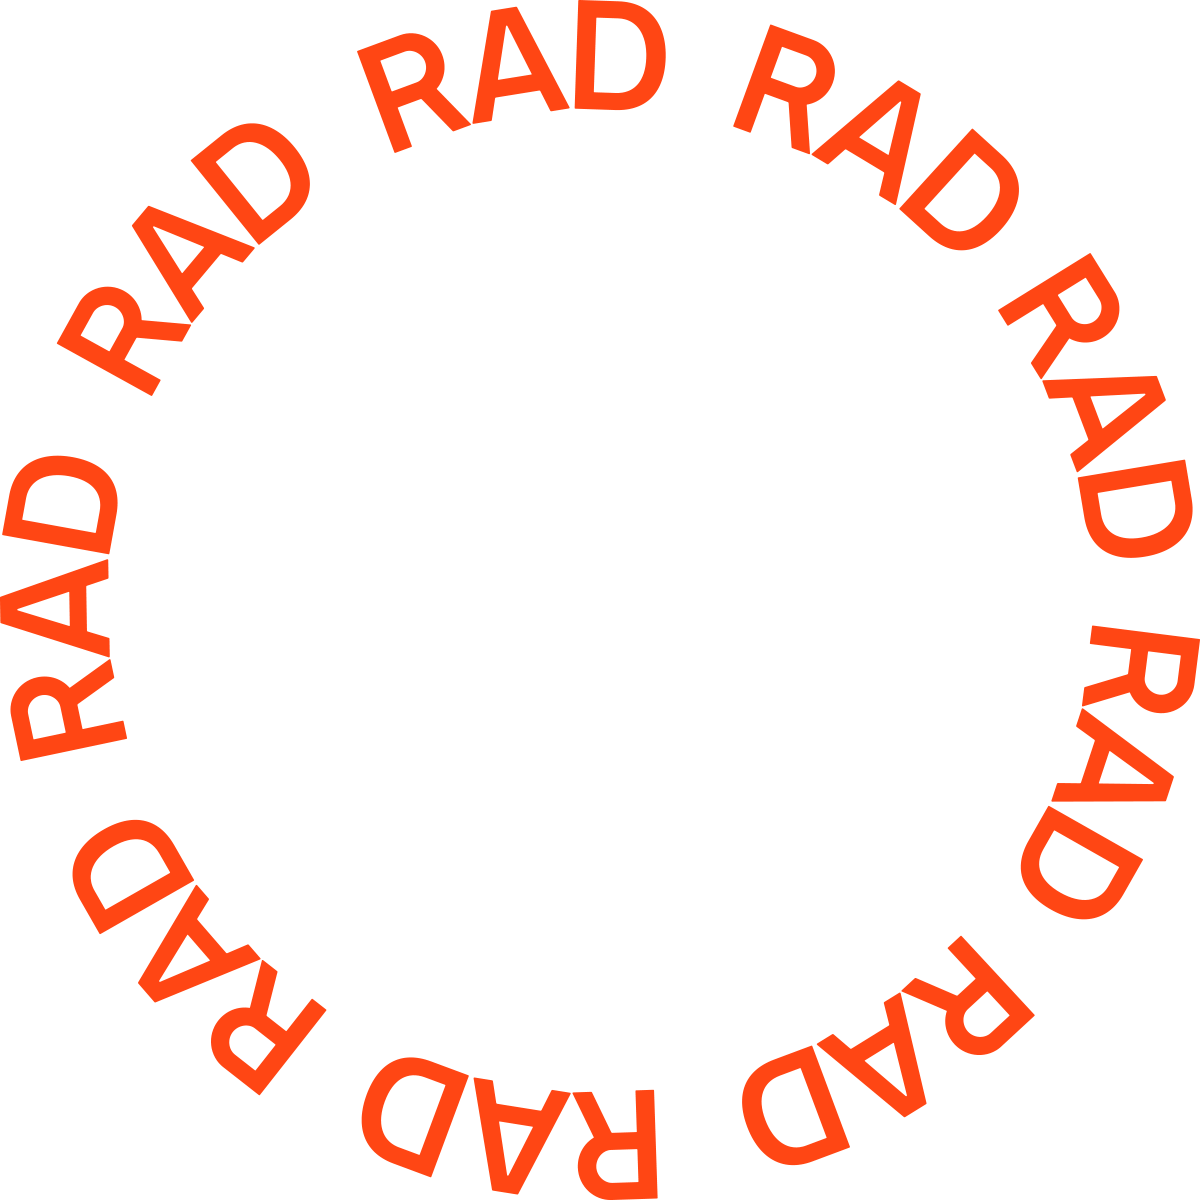 cg-circle-flat-rad-orange